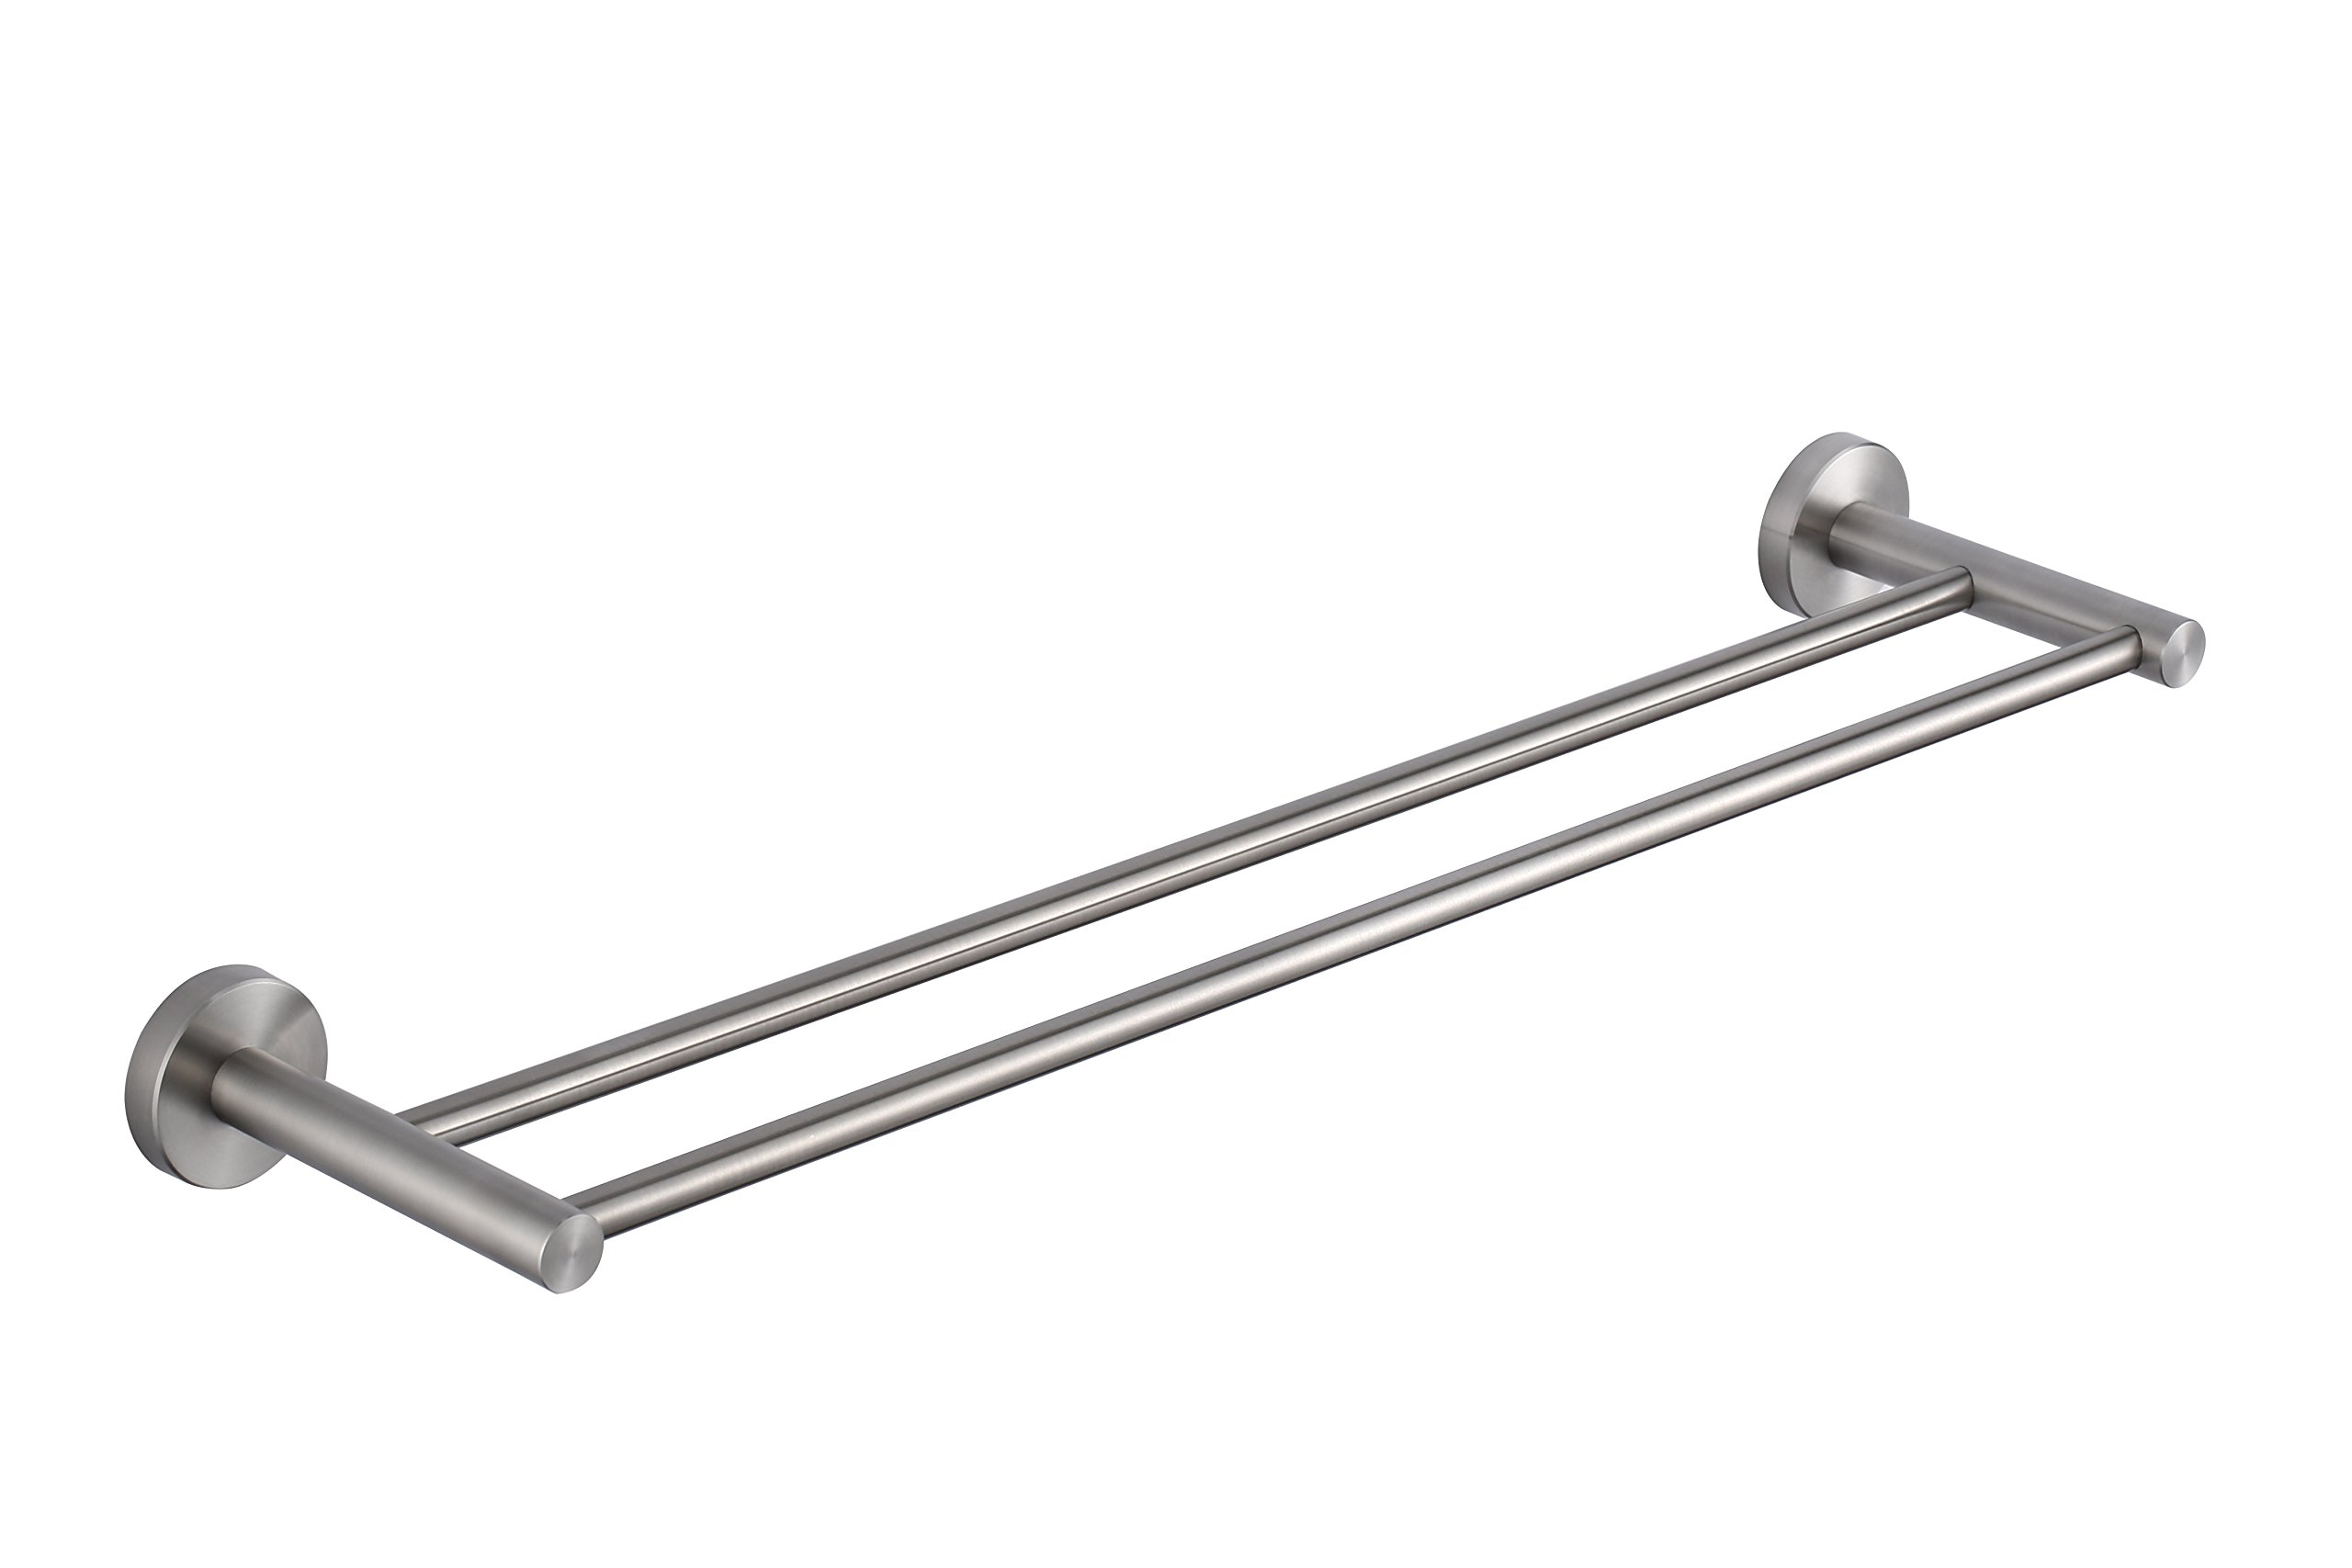 KTY 24-Inch Double Towel Bar Bathroom Shower Organization Bath Dual Towel Hanger Holder Brushed SUS 304 Stainless Steel Finish